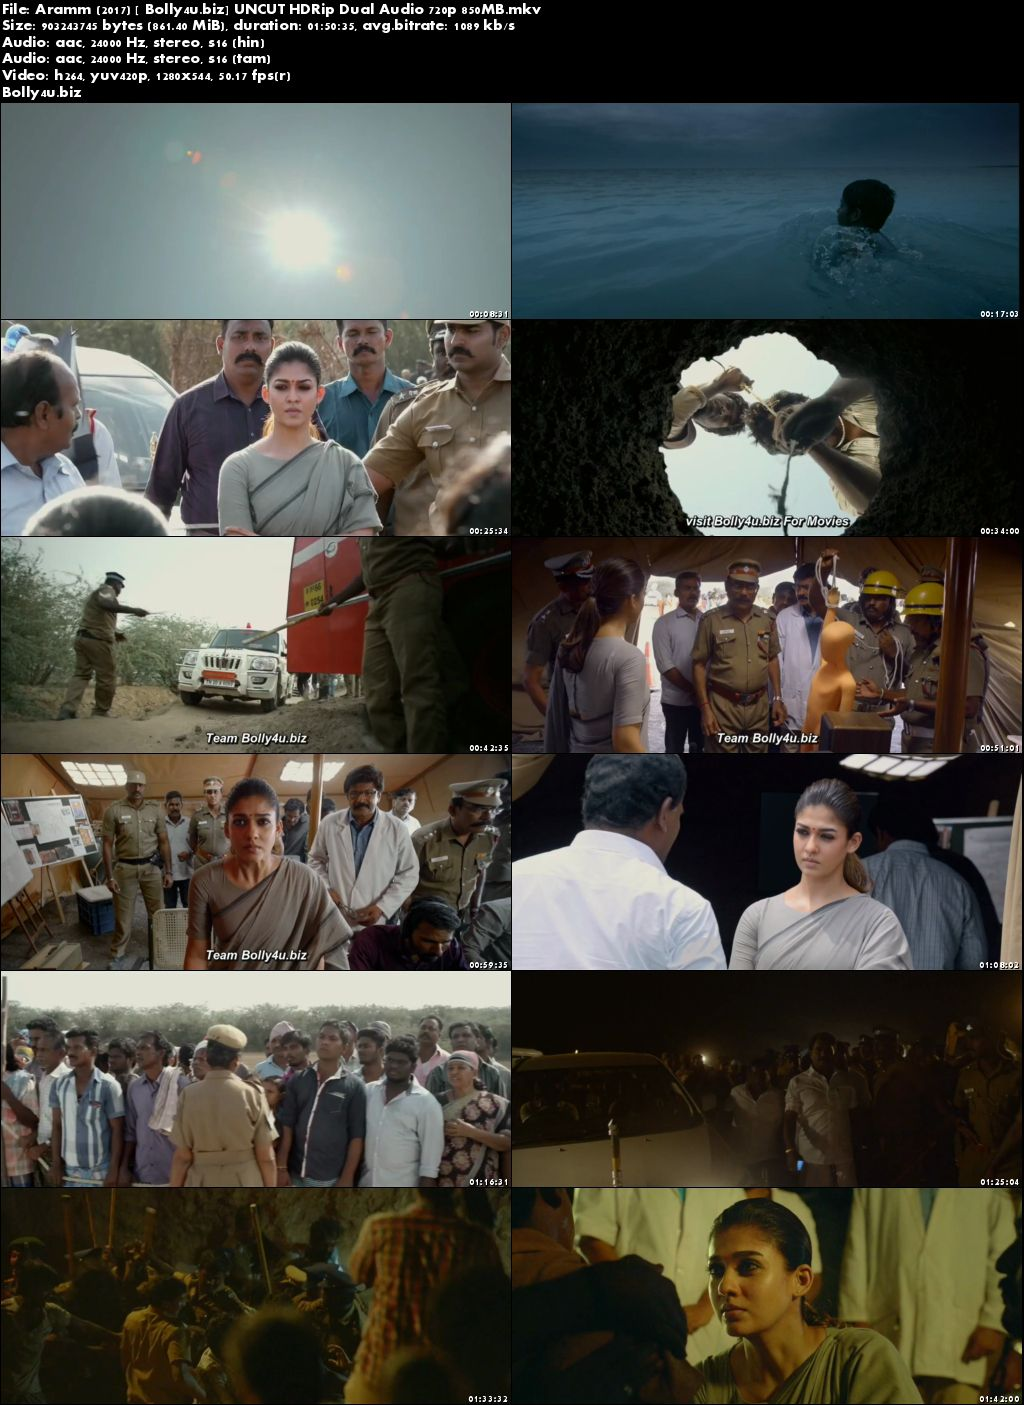 Aramm 2017 HDRip UNCUT 850MB Hindi Dual Audio 720p Download